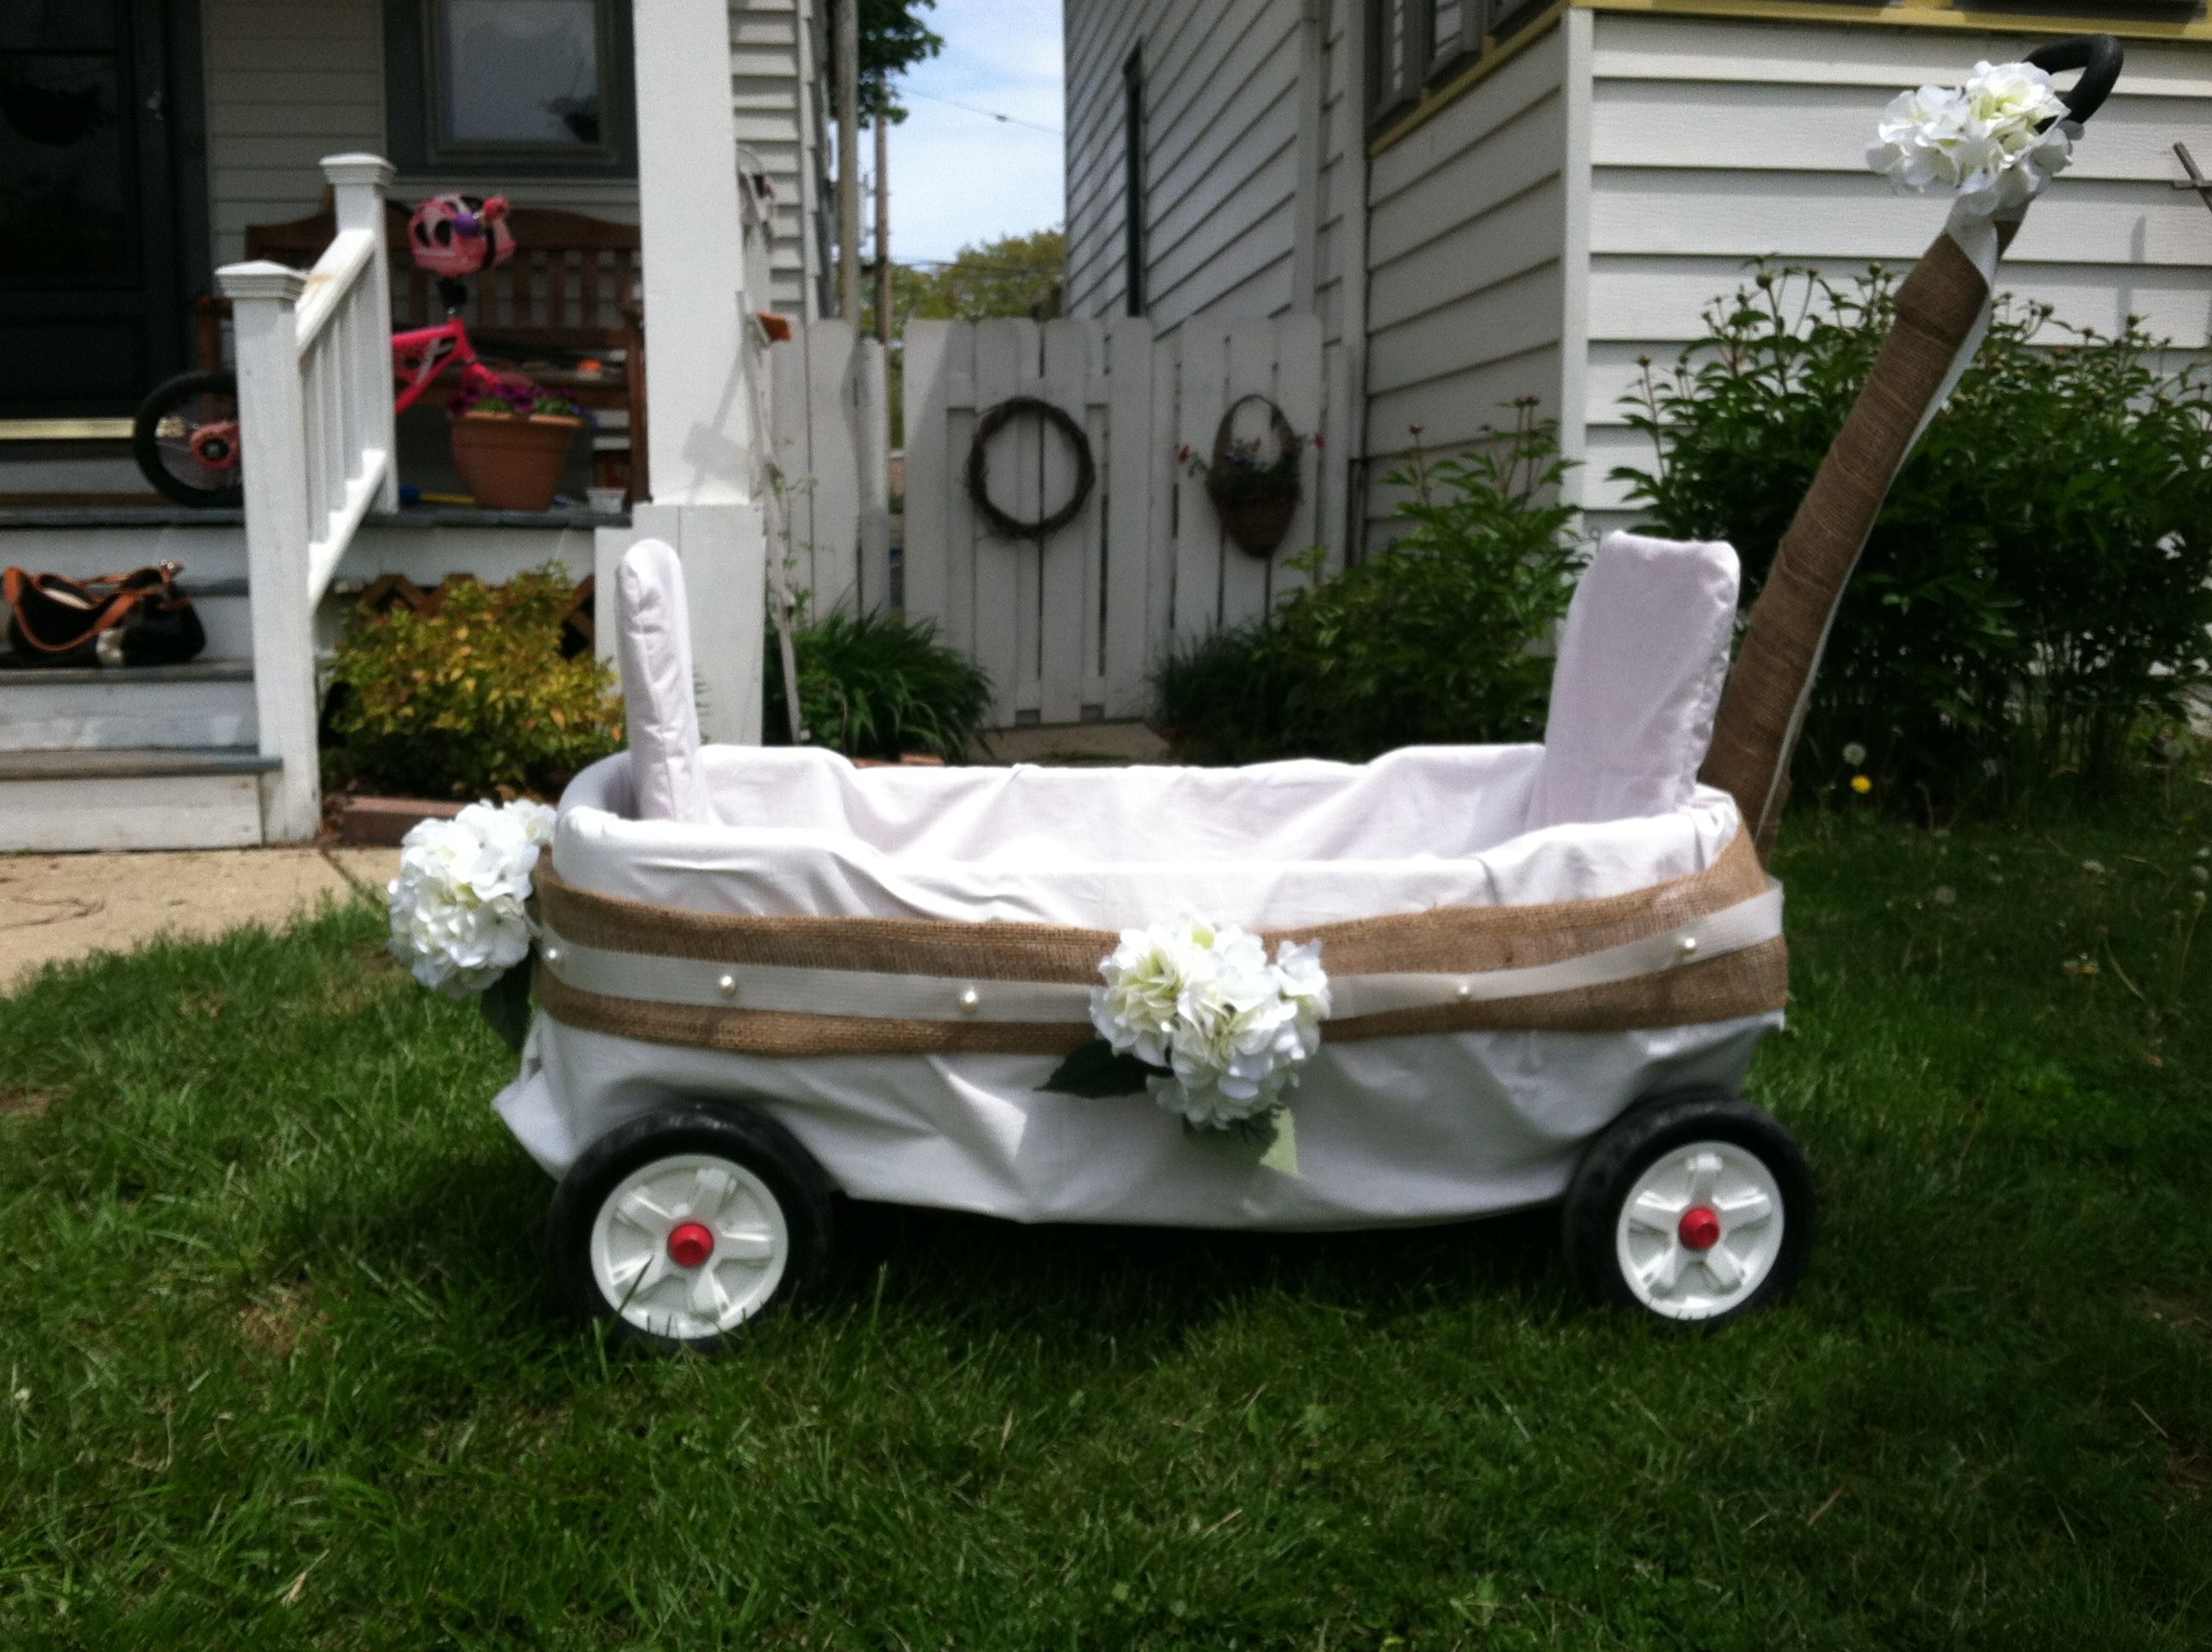 Wedding Wagon Wagon For Wedding Diy Wedding Wagon Flower Girl Wagon